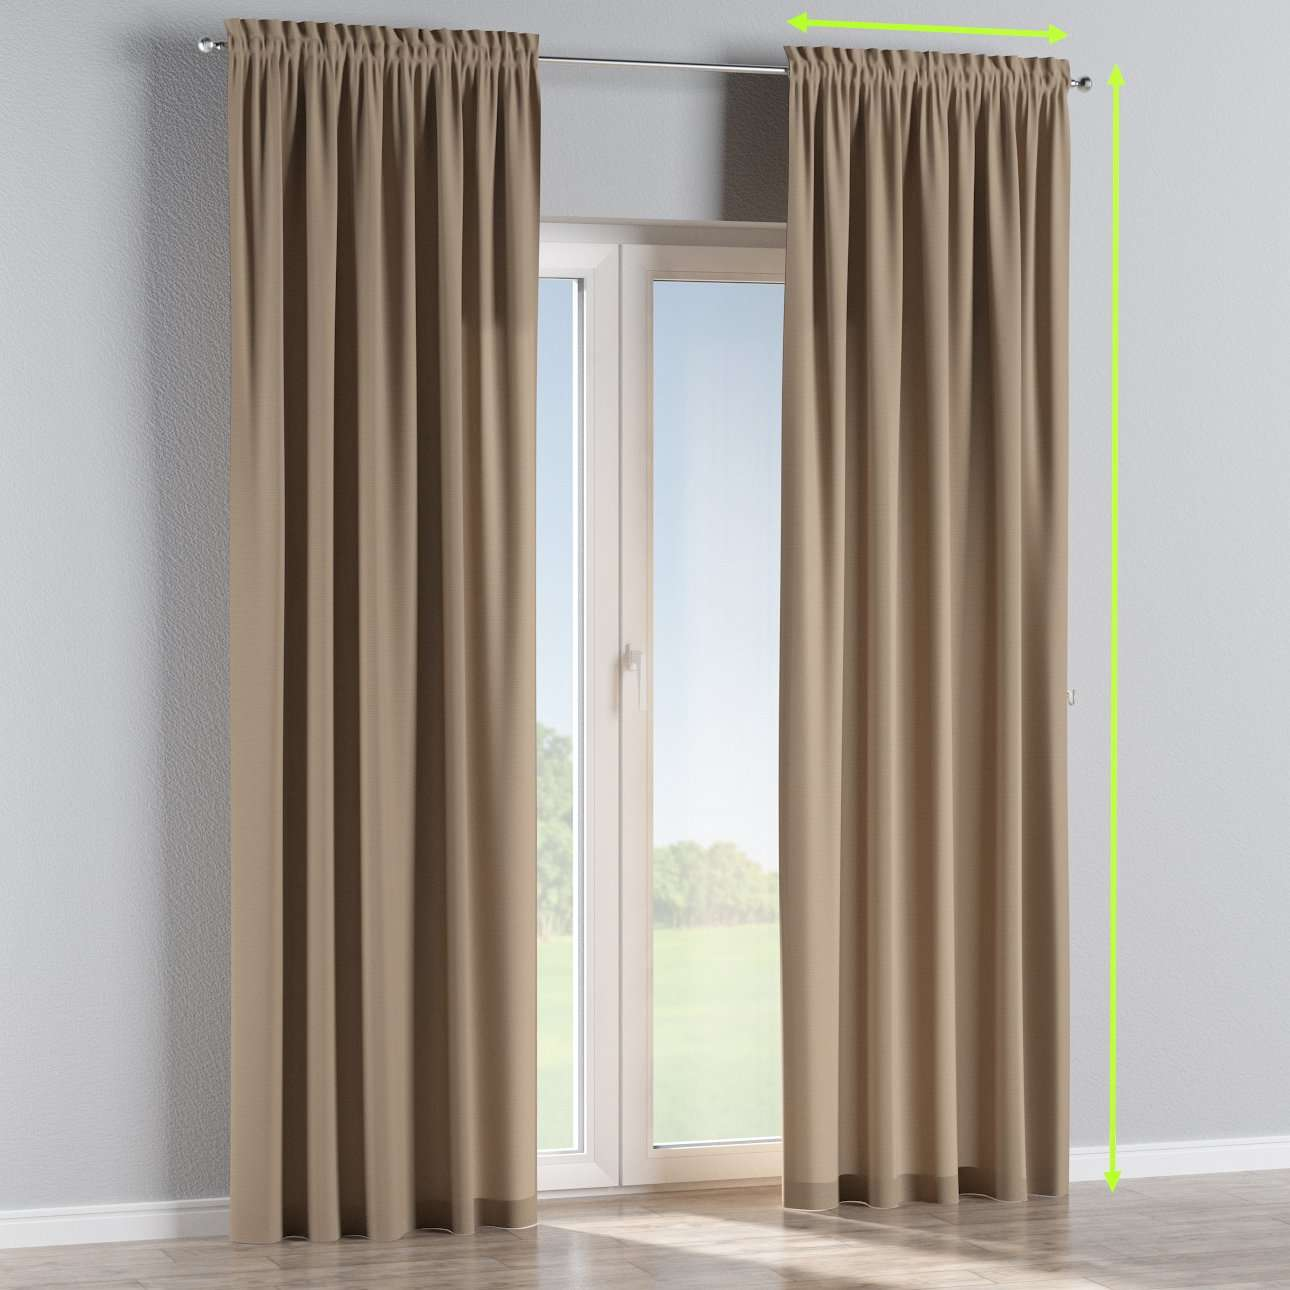 Slot and frill lined curtains in collection Cotton Panama, fabric: 702-28